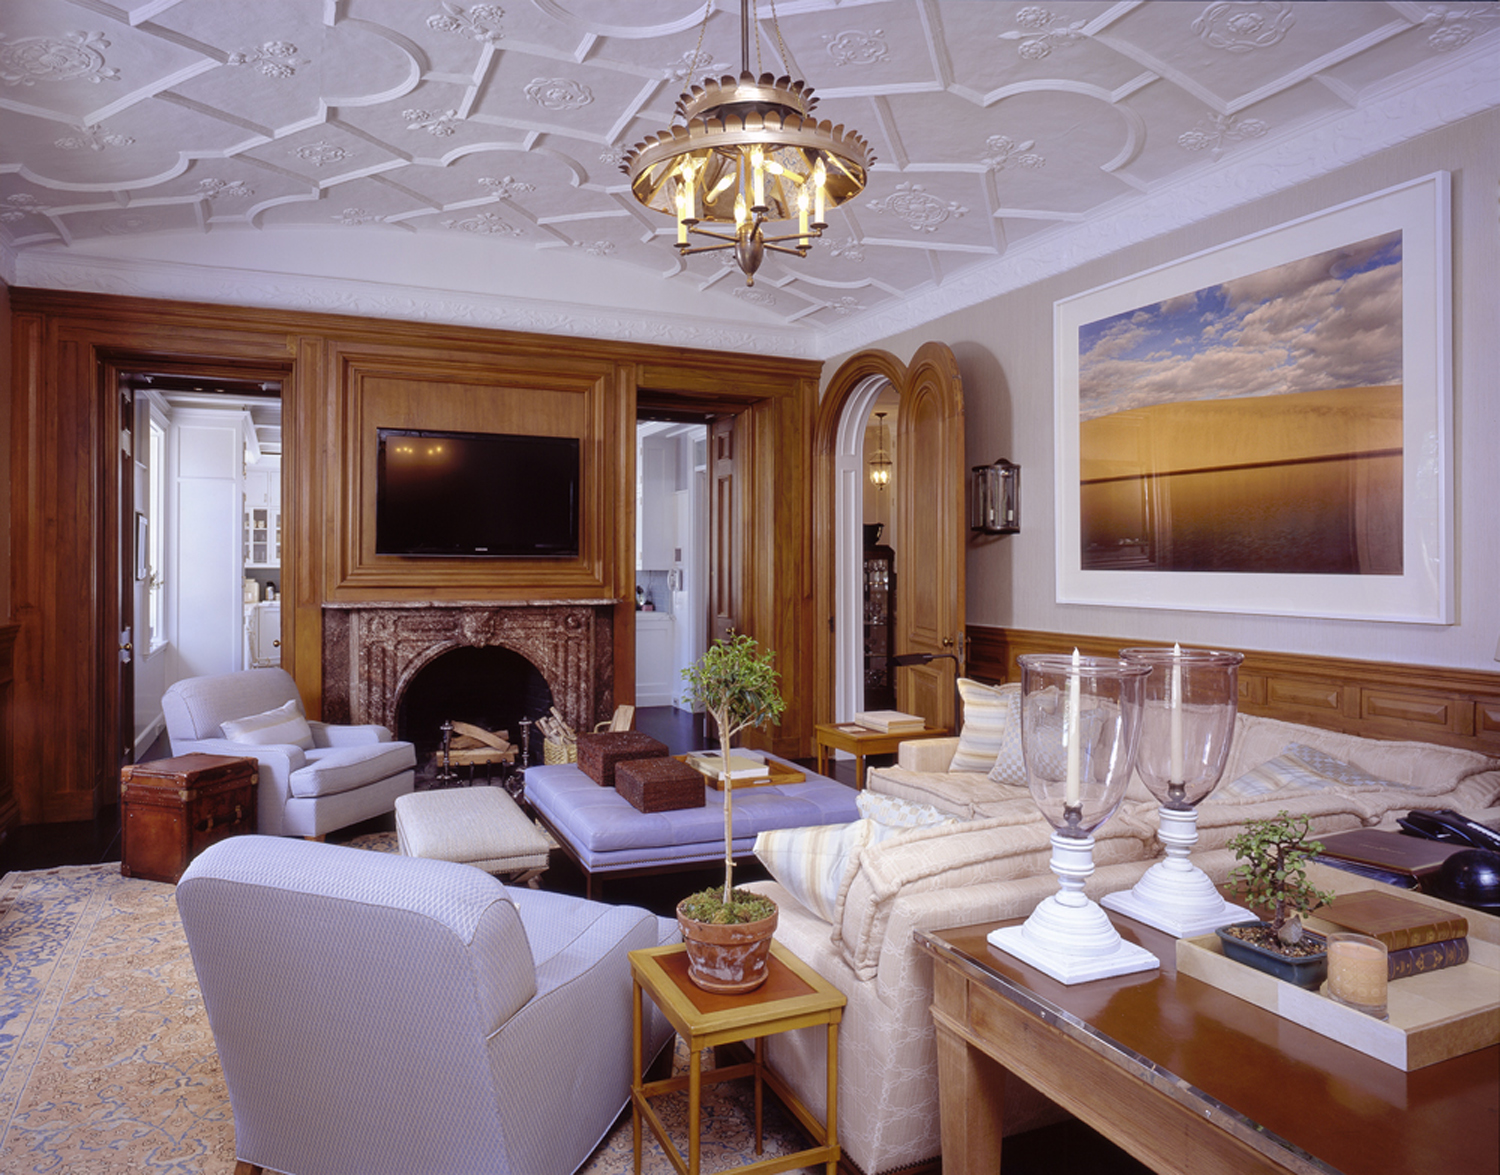 Historic-renovation-living-vaulted-plaster-ceiling-bronxville-ny-interior-w.jpg